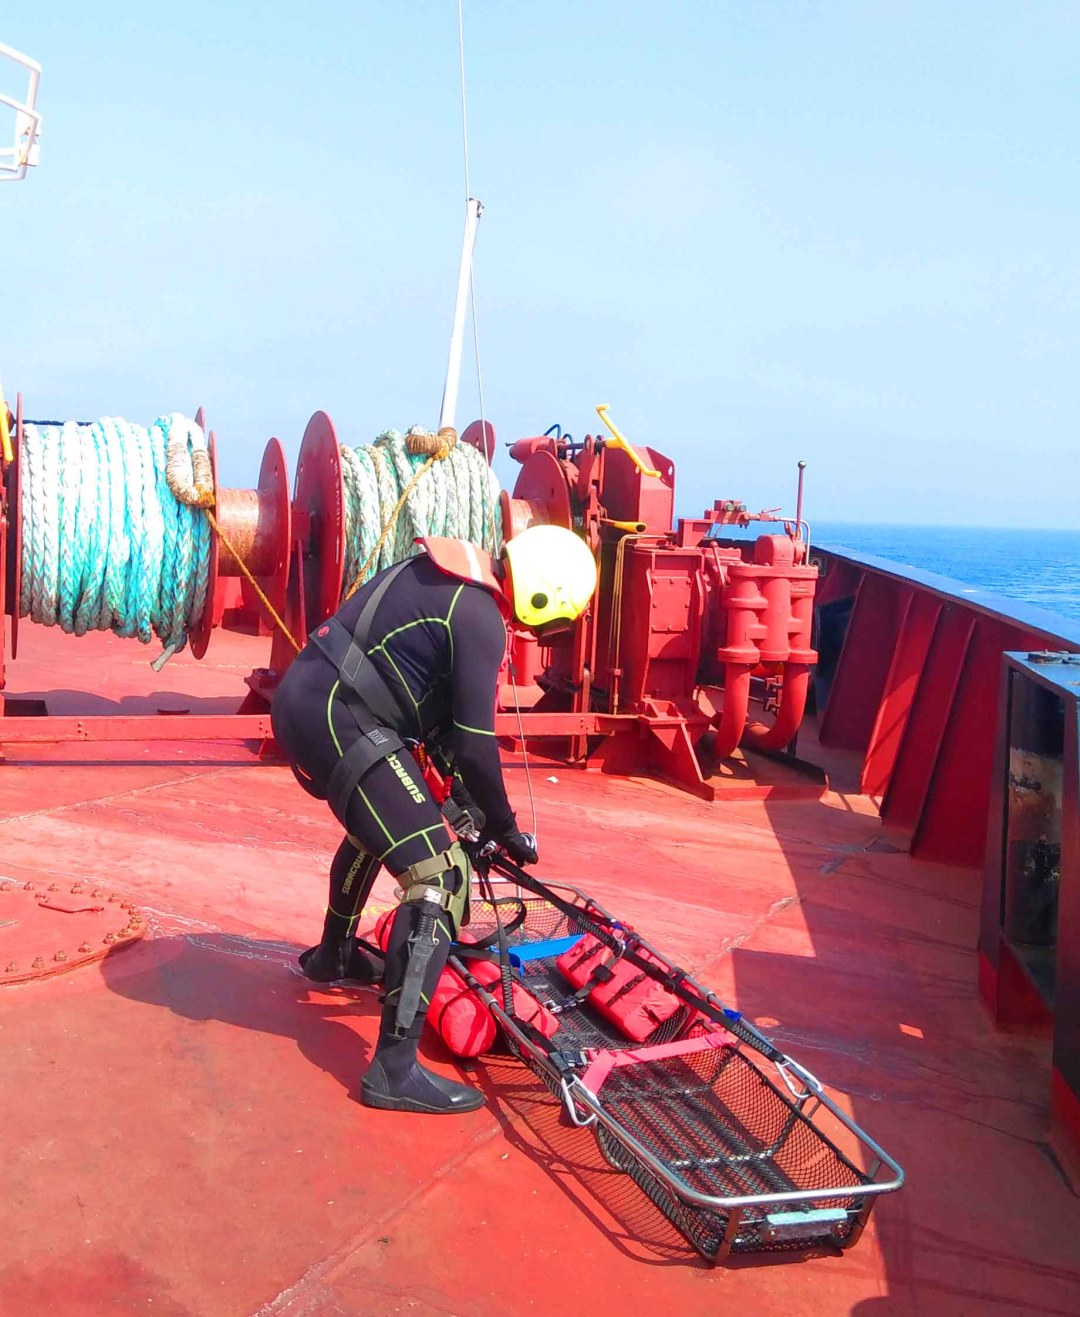 Portuguese Navy Officer conducting a Search and Rescue Landing on a ship's poop deck